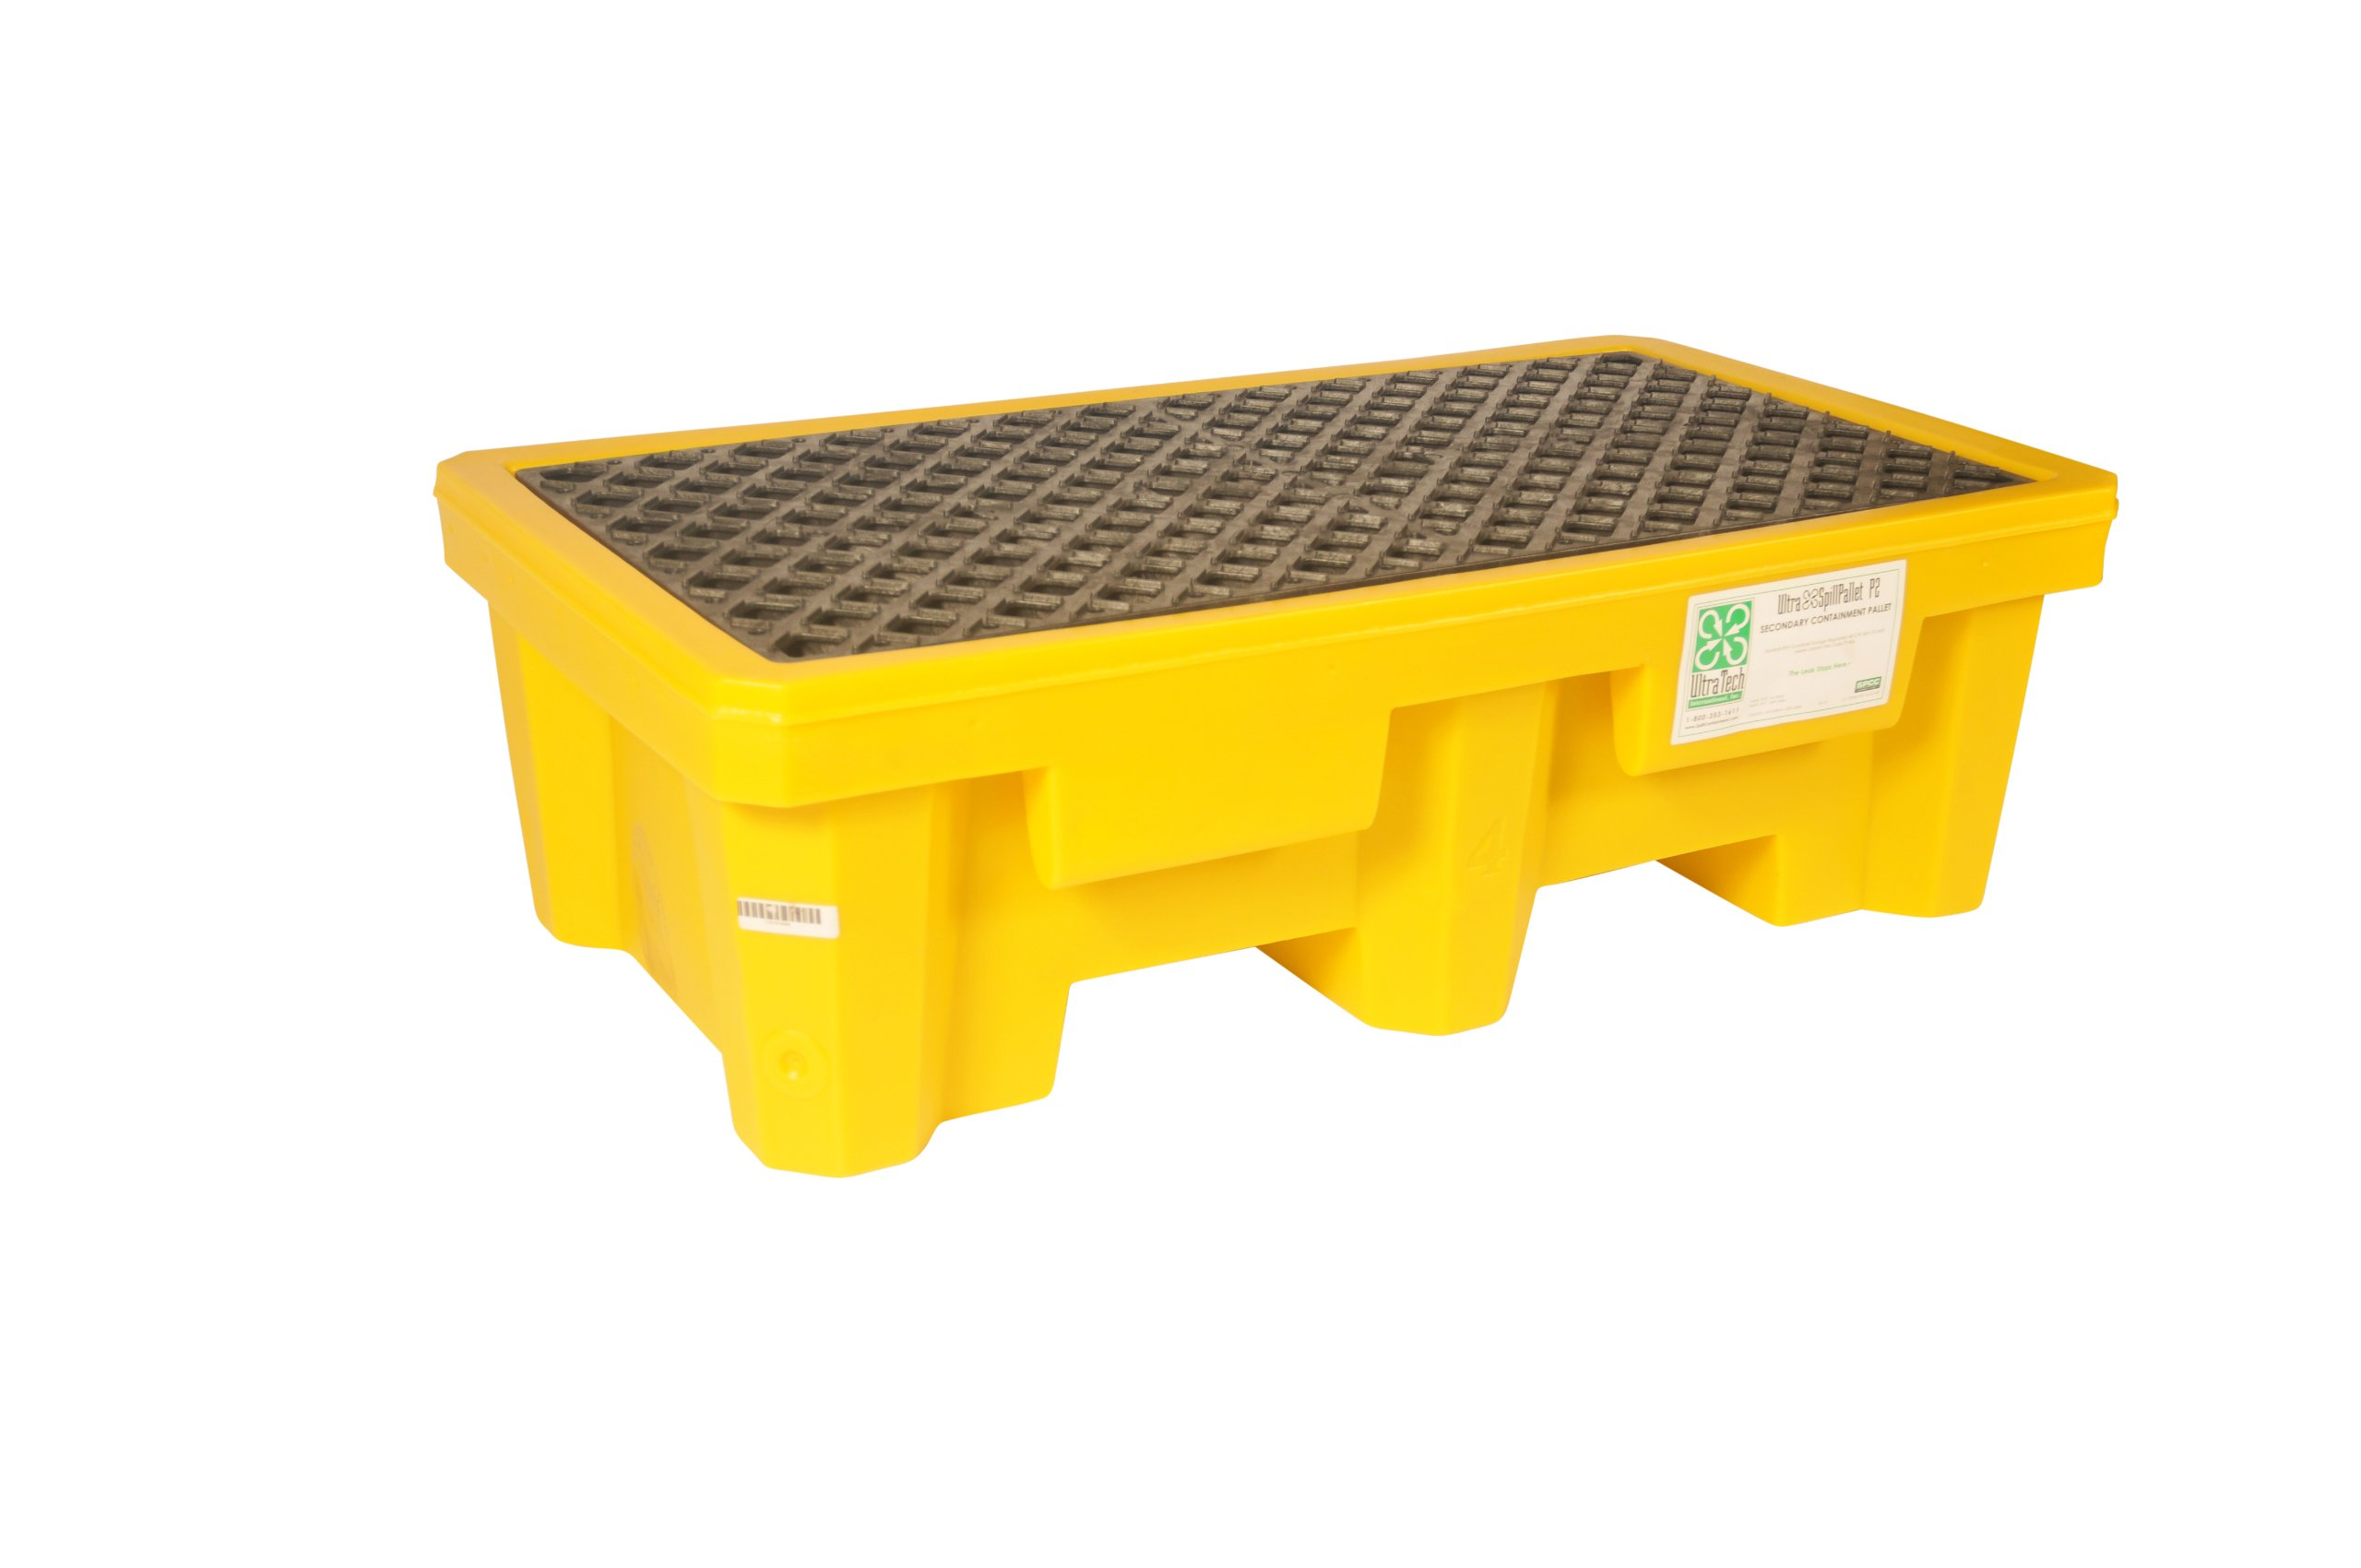 UltraTech 1011 Non-Recycled Polyethylene 2-Drum Ultra-Spill Pallet P2 with Drain, 3000 lbs Capacity, 5 Year Warranty, Yellow